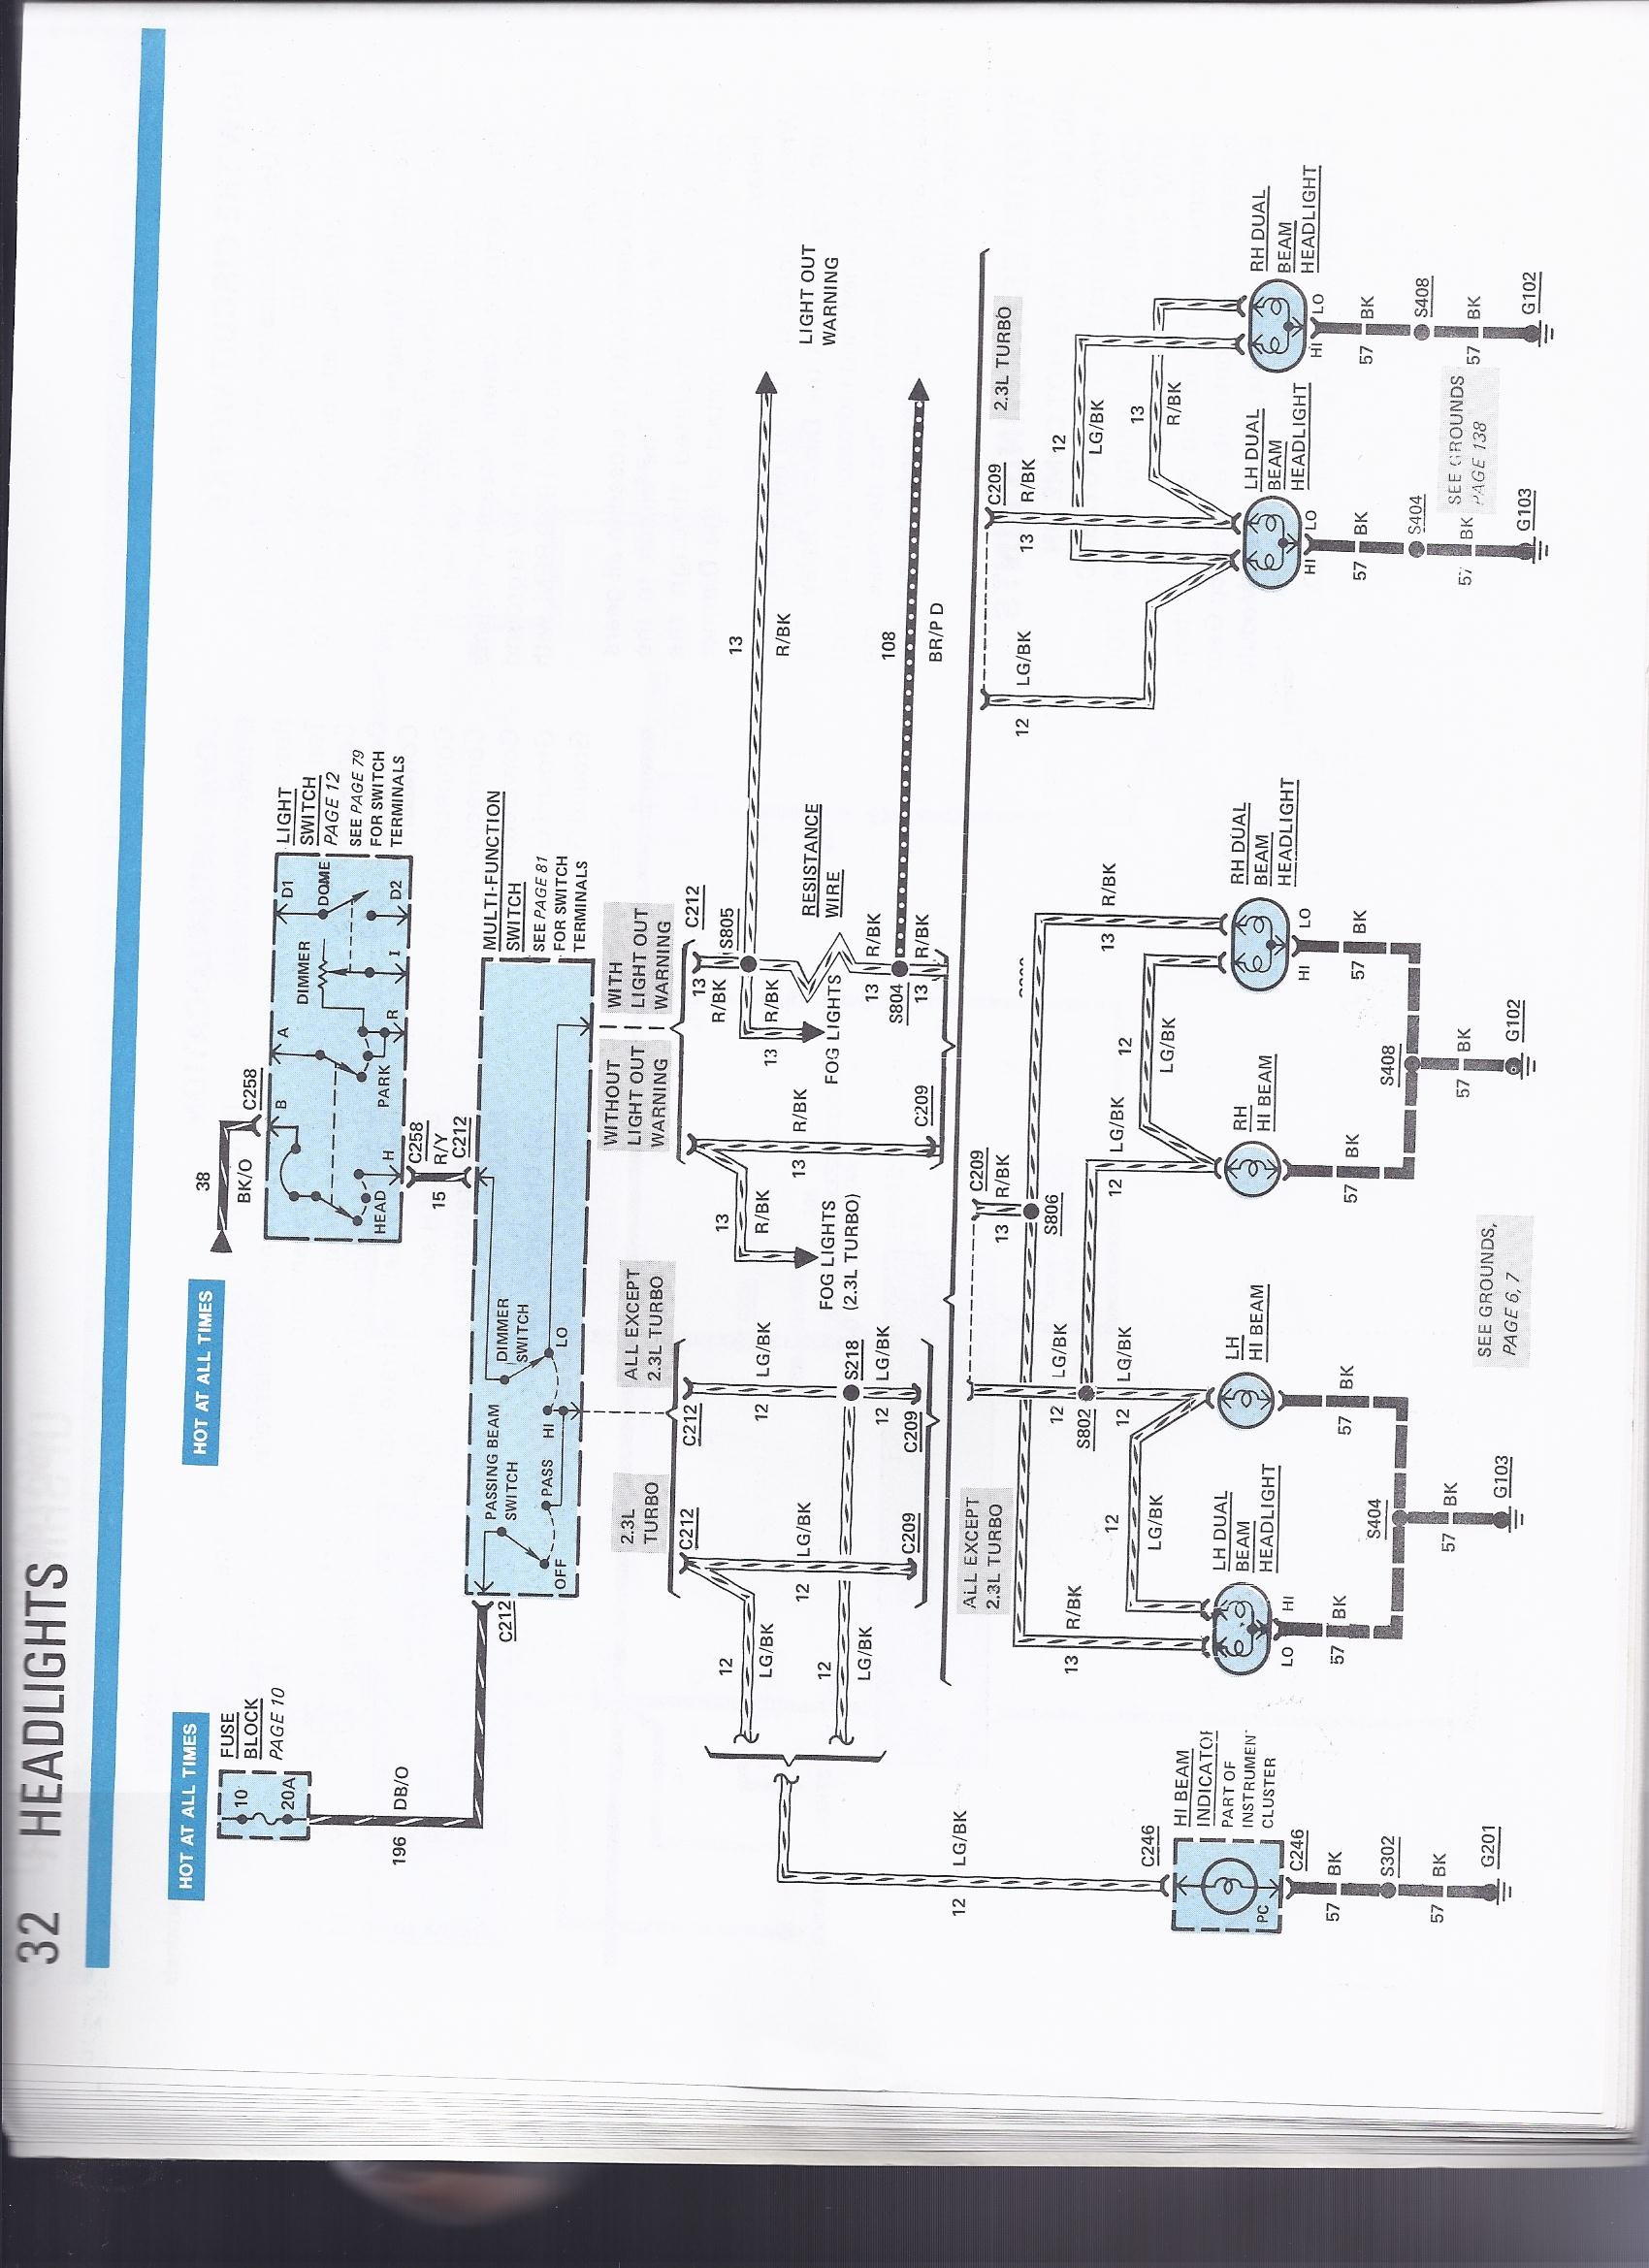 1984 Mustang Fuse Panel Diagram Trusted Schematics Box 84 Wiring Diagrams 99 V6